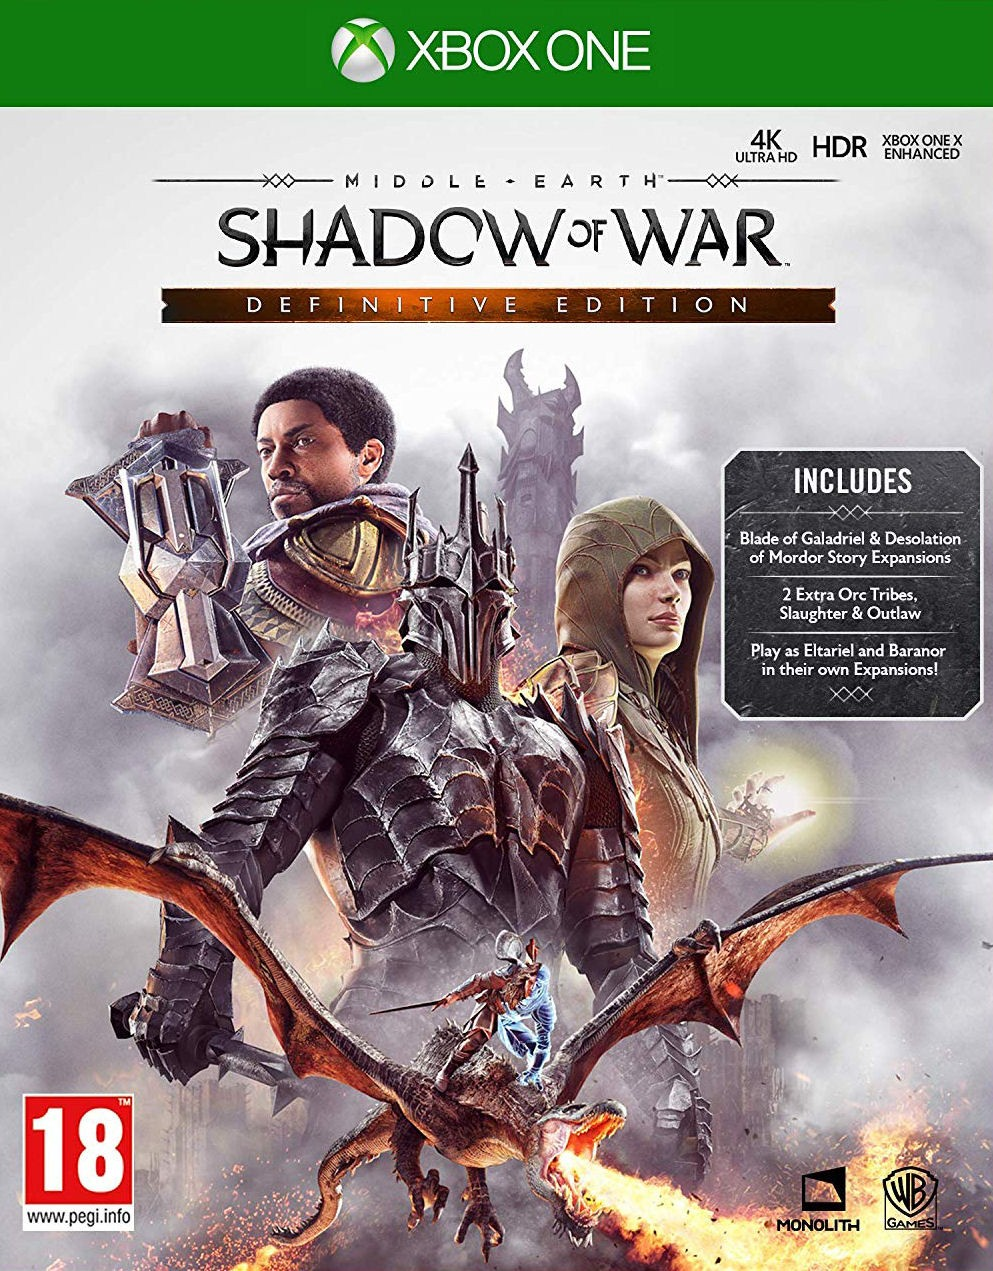 Middle-earth: Shadow of War Definitive Edition